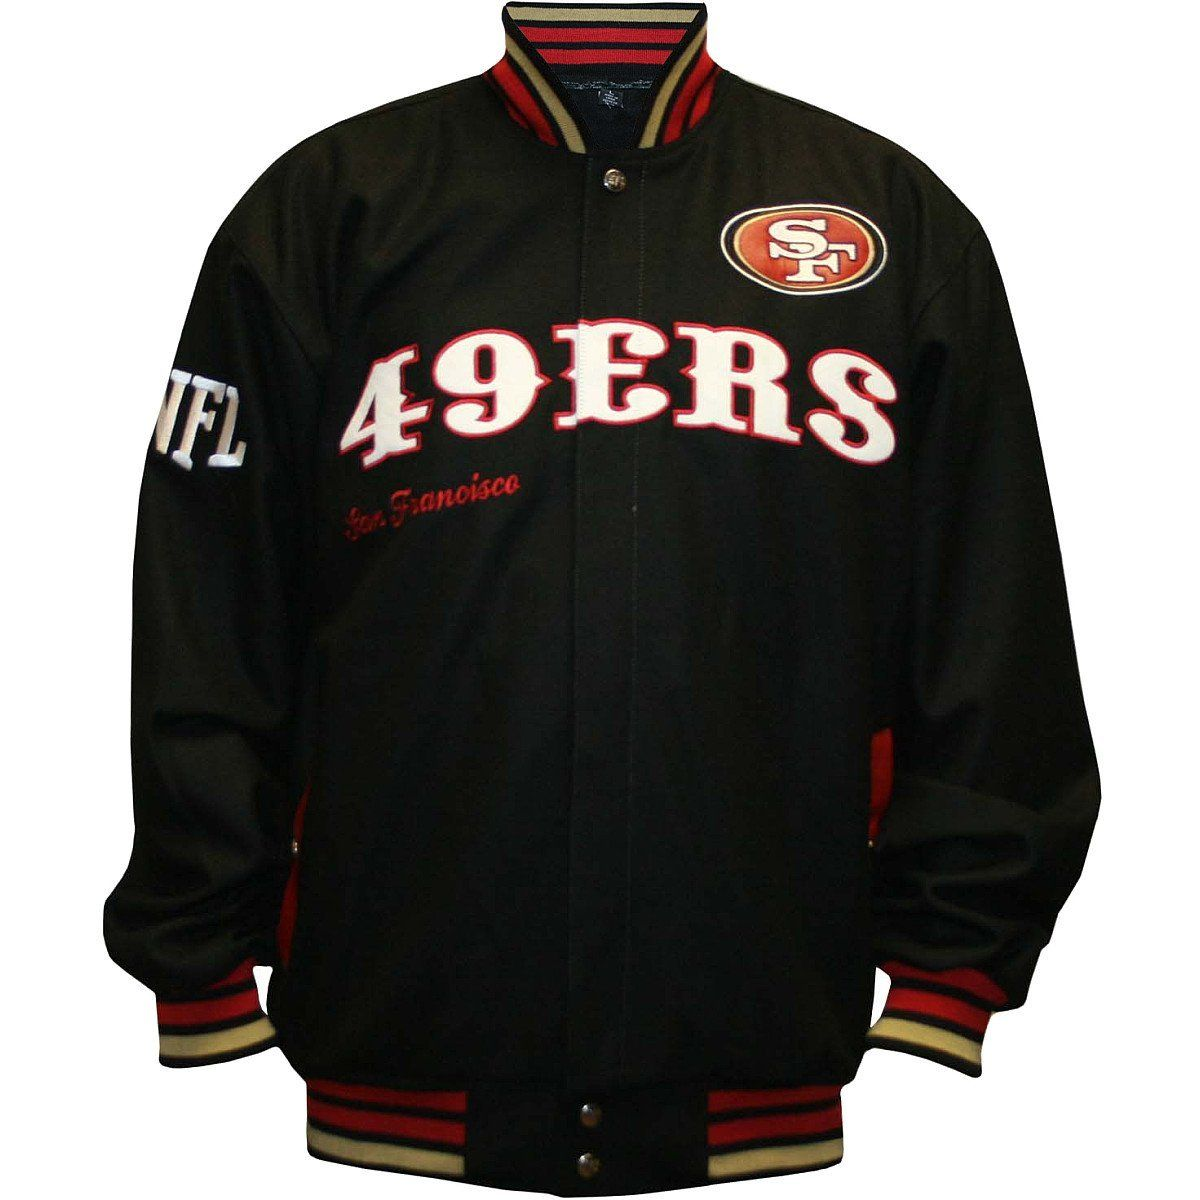 where to buy new seattle mariners mlb jerseys 2017 san francisco 49ers jackets with black and red design and old fashion writing